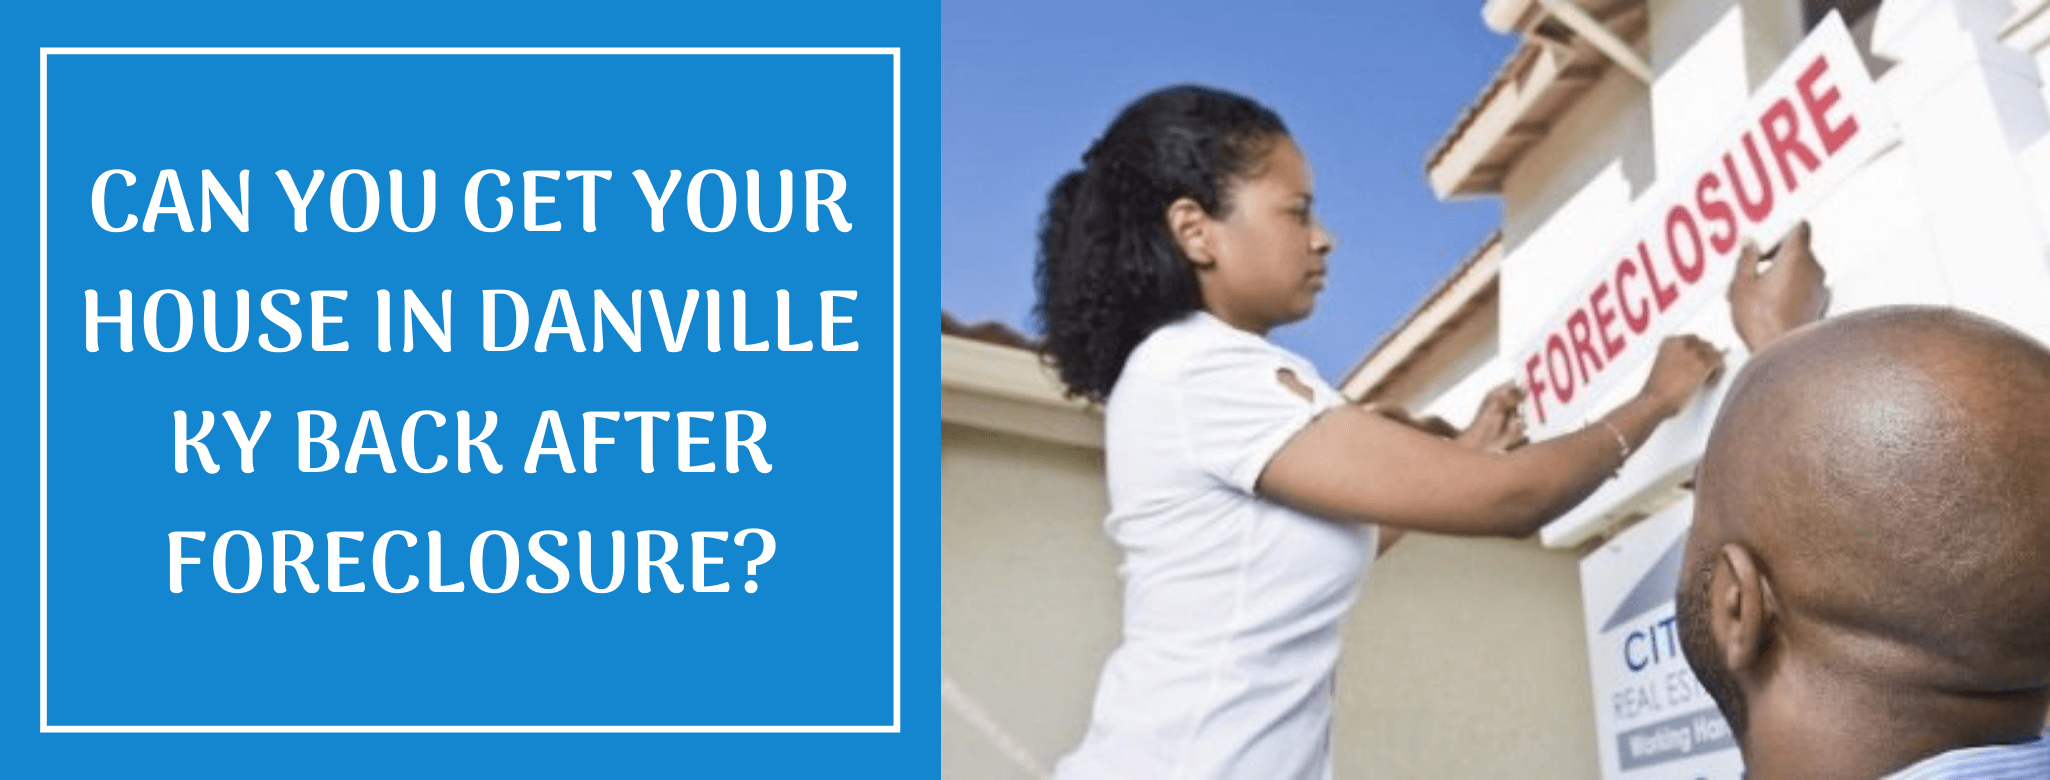 Sell your home in Danville KY